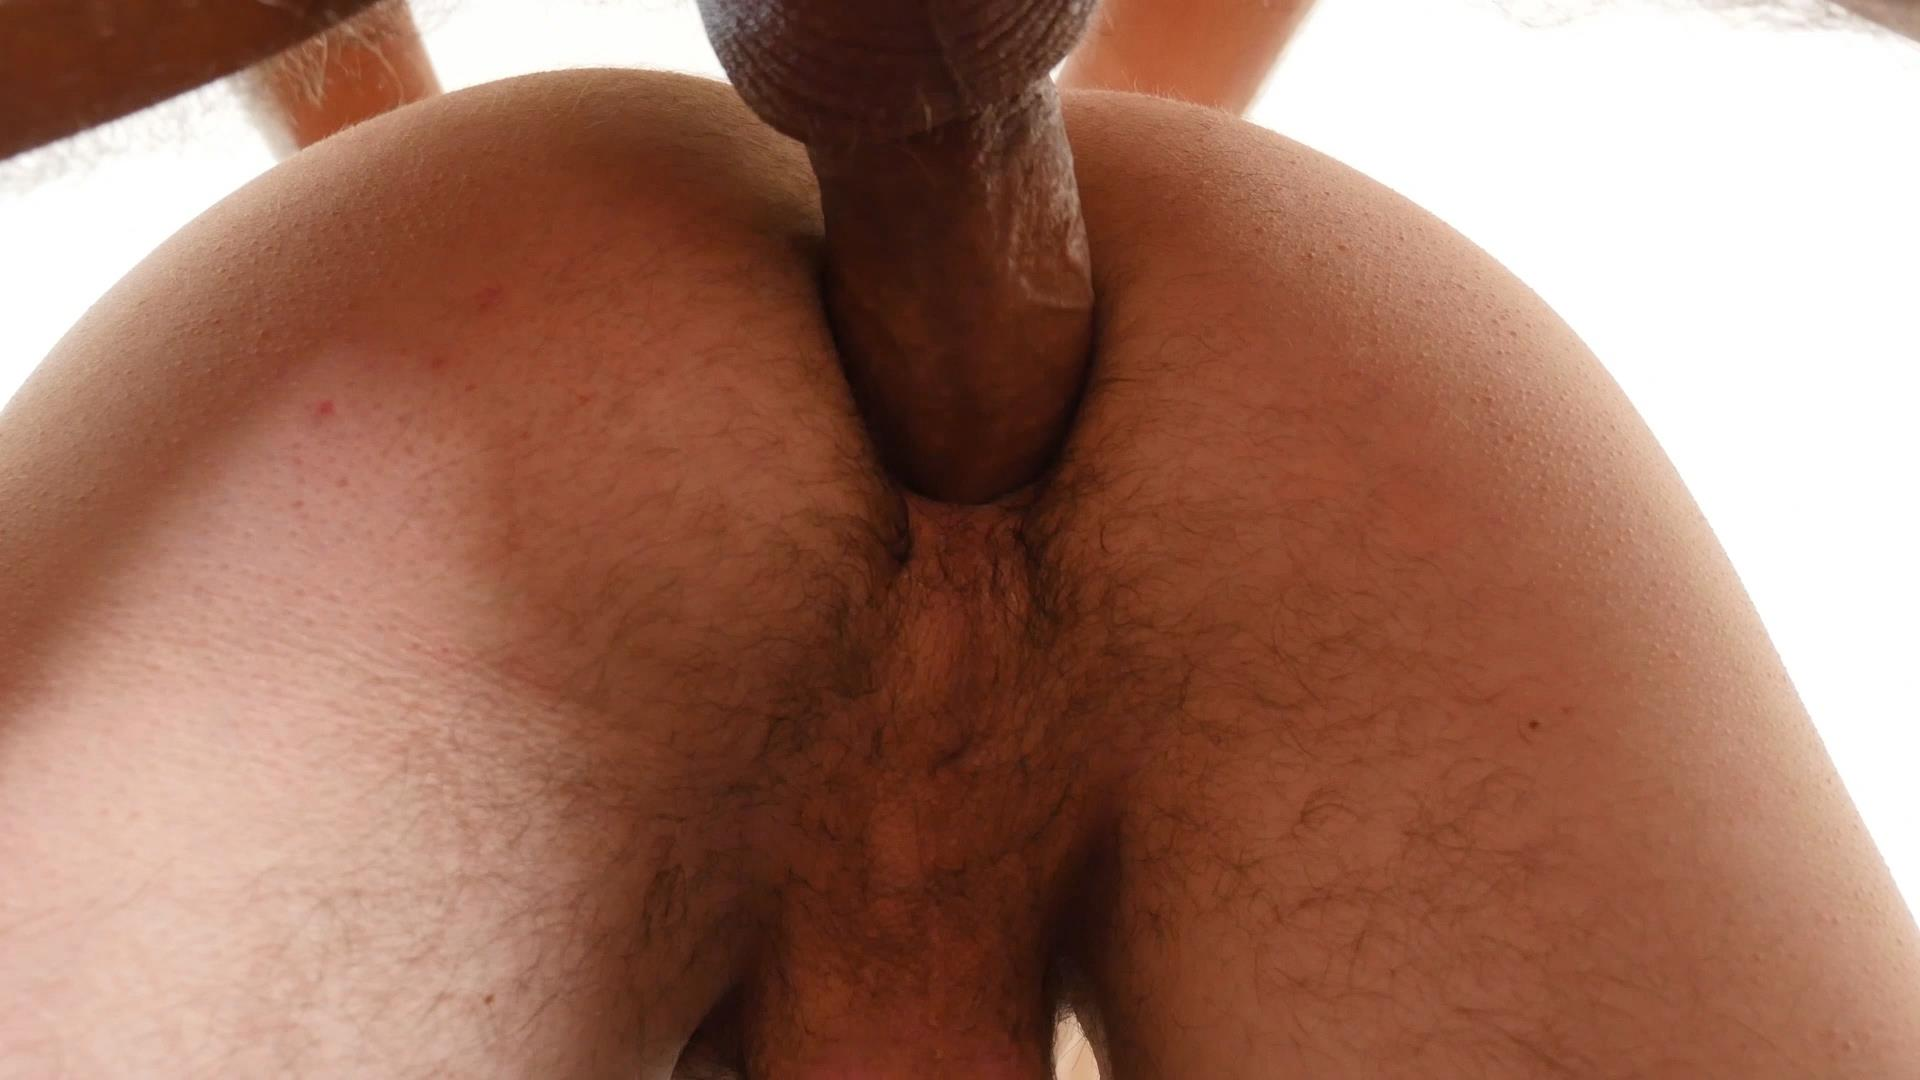 Twinky-Feet-Martin-Muse-and-James-Hulk-Twink-Feet-And-Bareback-Sex-Amateur-Gay-Porn-16 A Foot Job, A Blow Job and A Bareback Fuck With A Big Uncut Cock